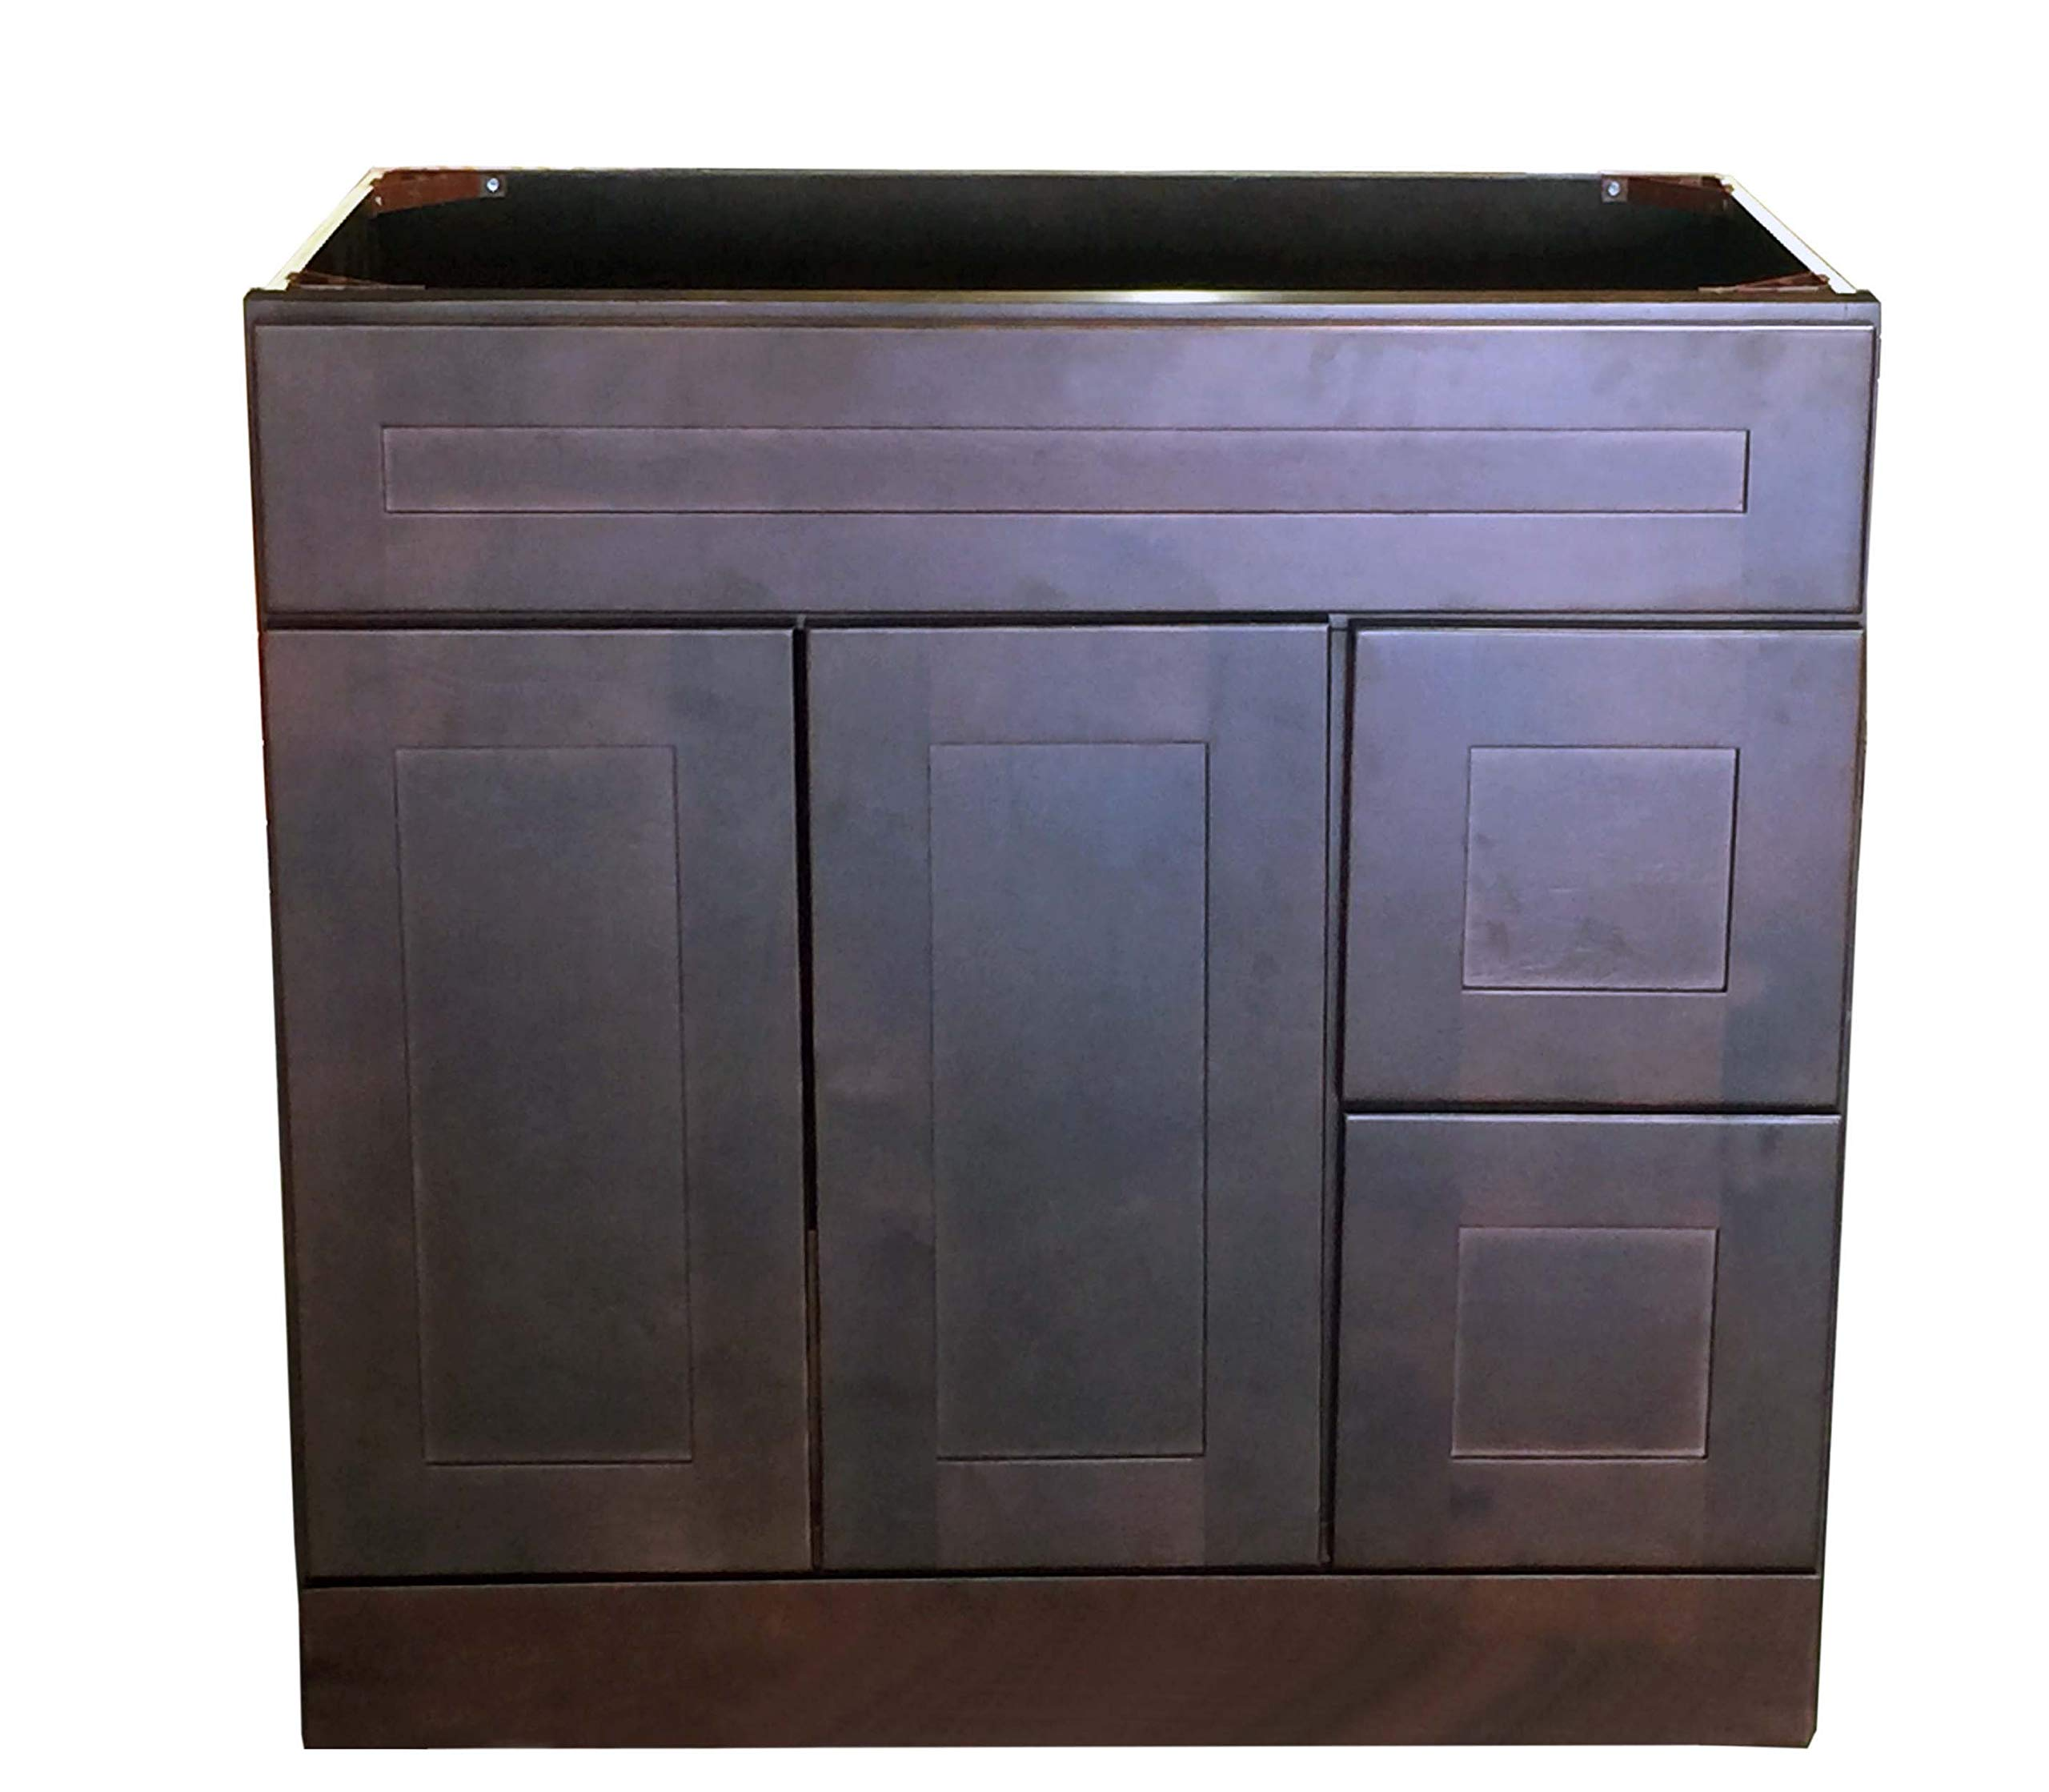 "New Espreso shaker Single-sink Bathroom Vanity Base Cabinet 36"" Wide x 21"" Deep ES-V3621DL/R - 36"" W x 21"" D x 34.5"" H Assembly needed Solid wood with hardwood plywood construction,Made of wood - bathroom-vanities, bathroom-fixtures-hardware, bathroom - 71u5FjDQUmL -"